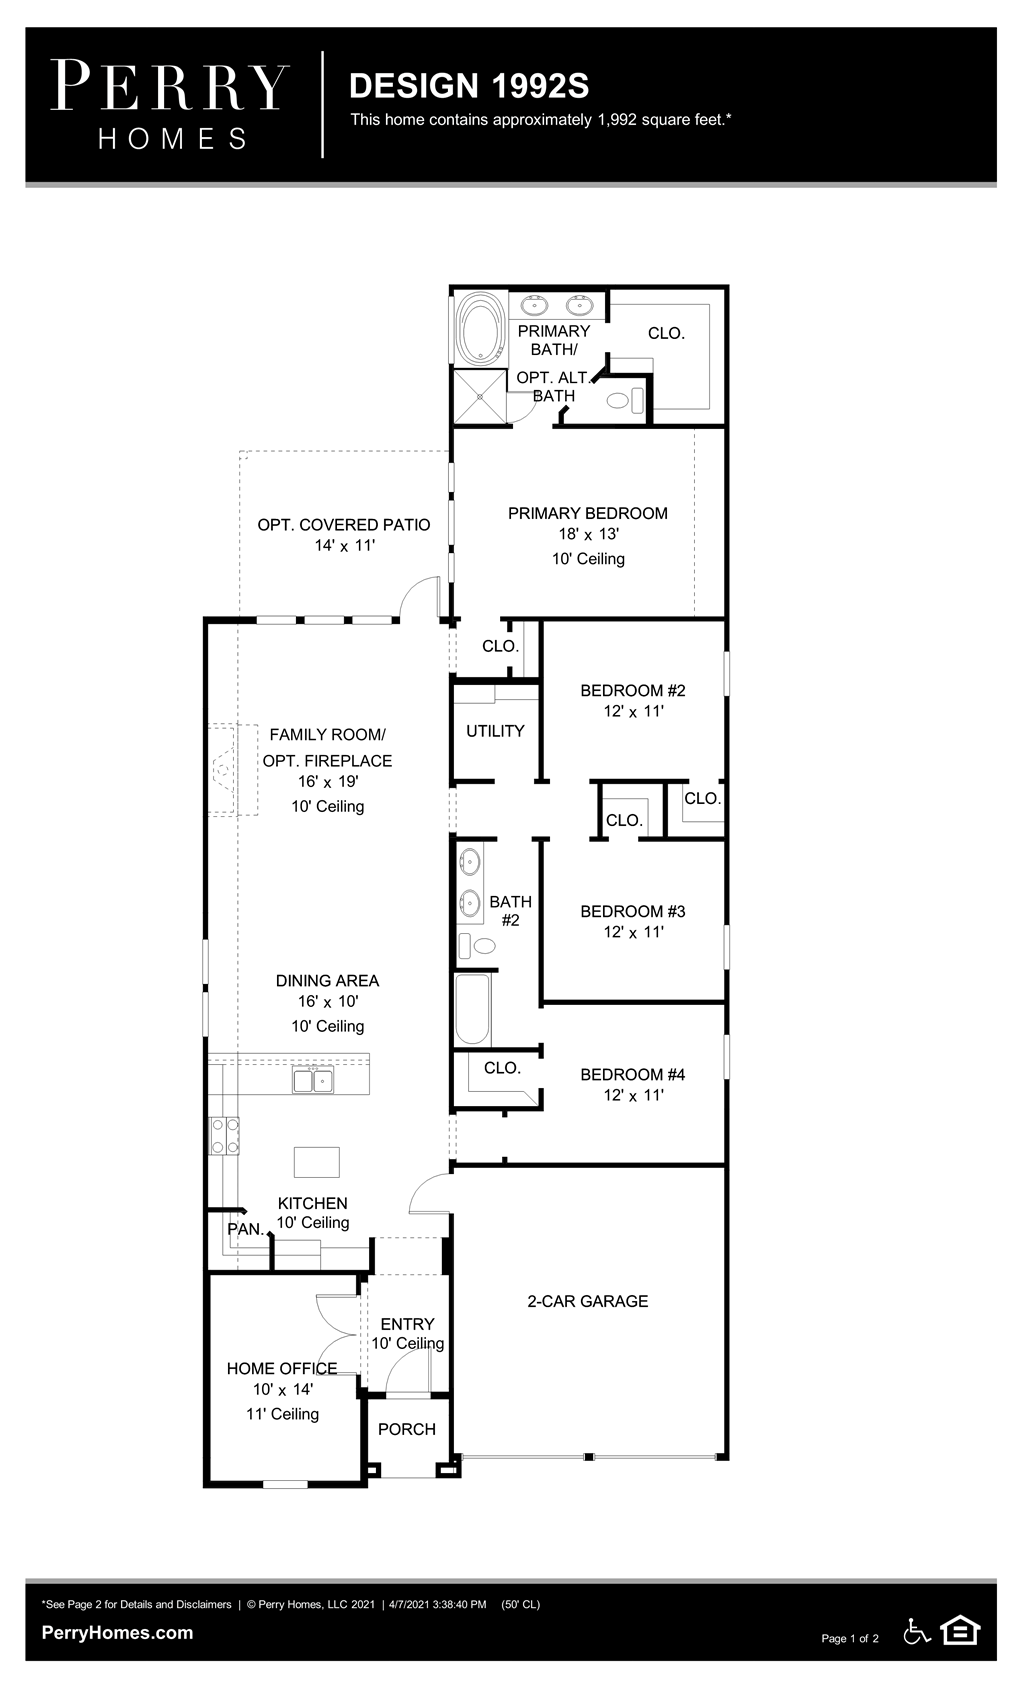 Floor Plan for 1992S